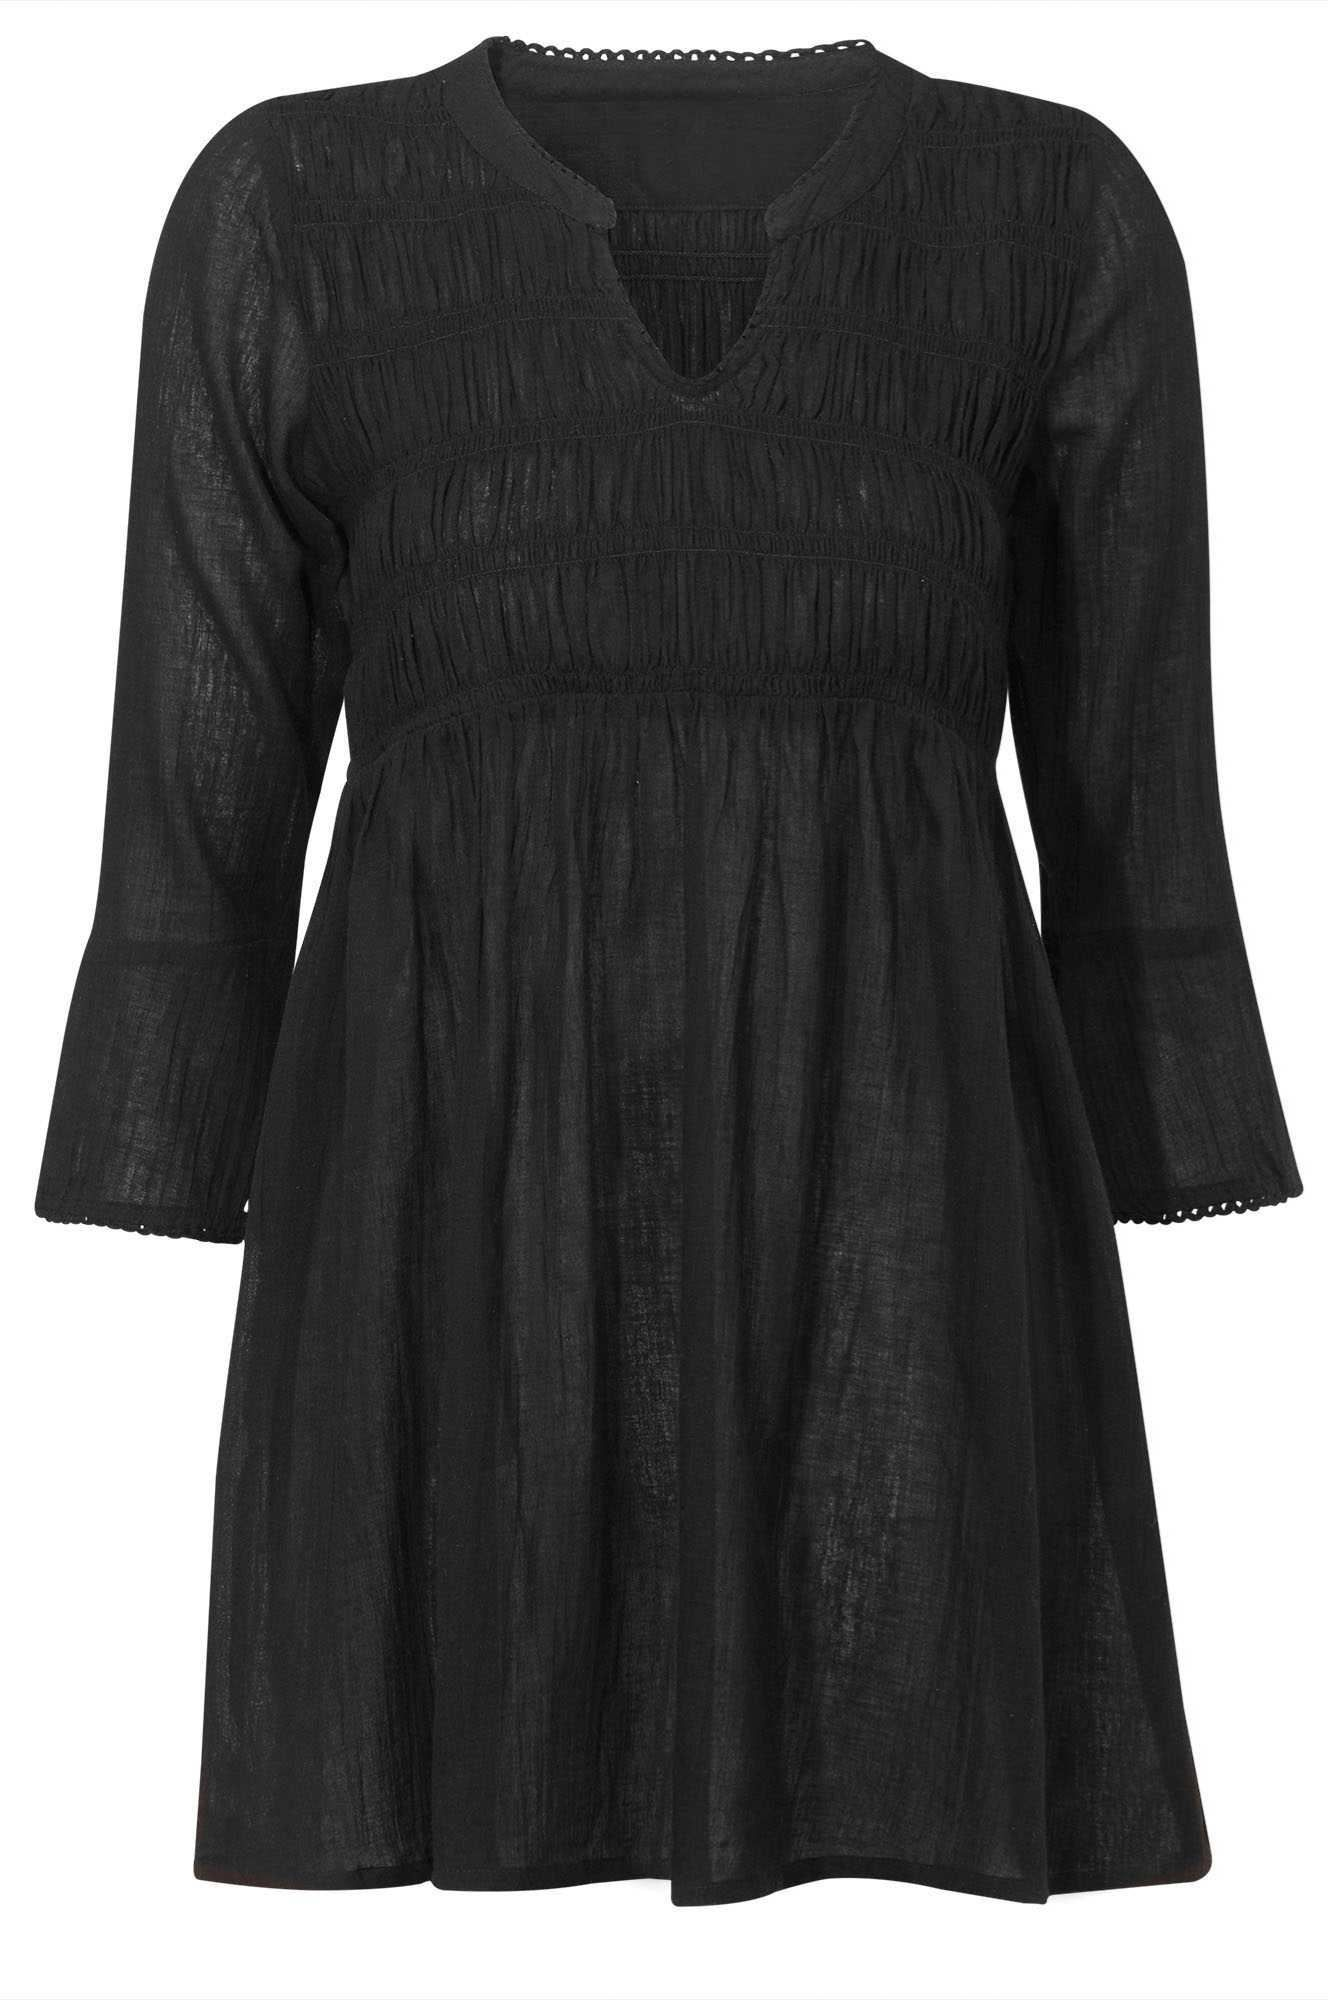 3d793967779e6 Smocked Empire Waist Tunic by ellos - Women s Plus Size Clothing ...